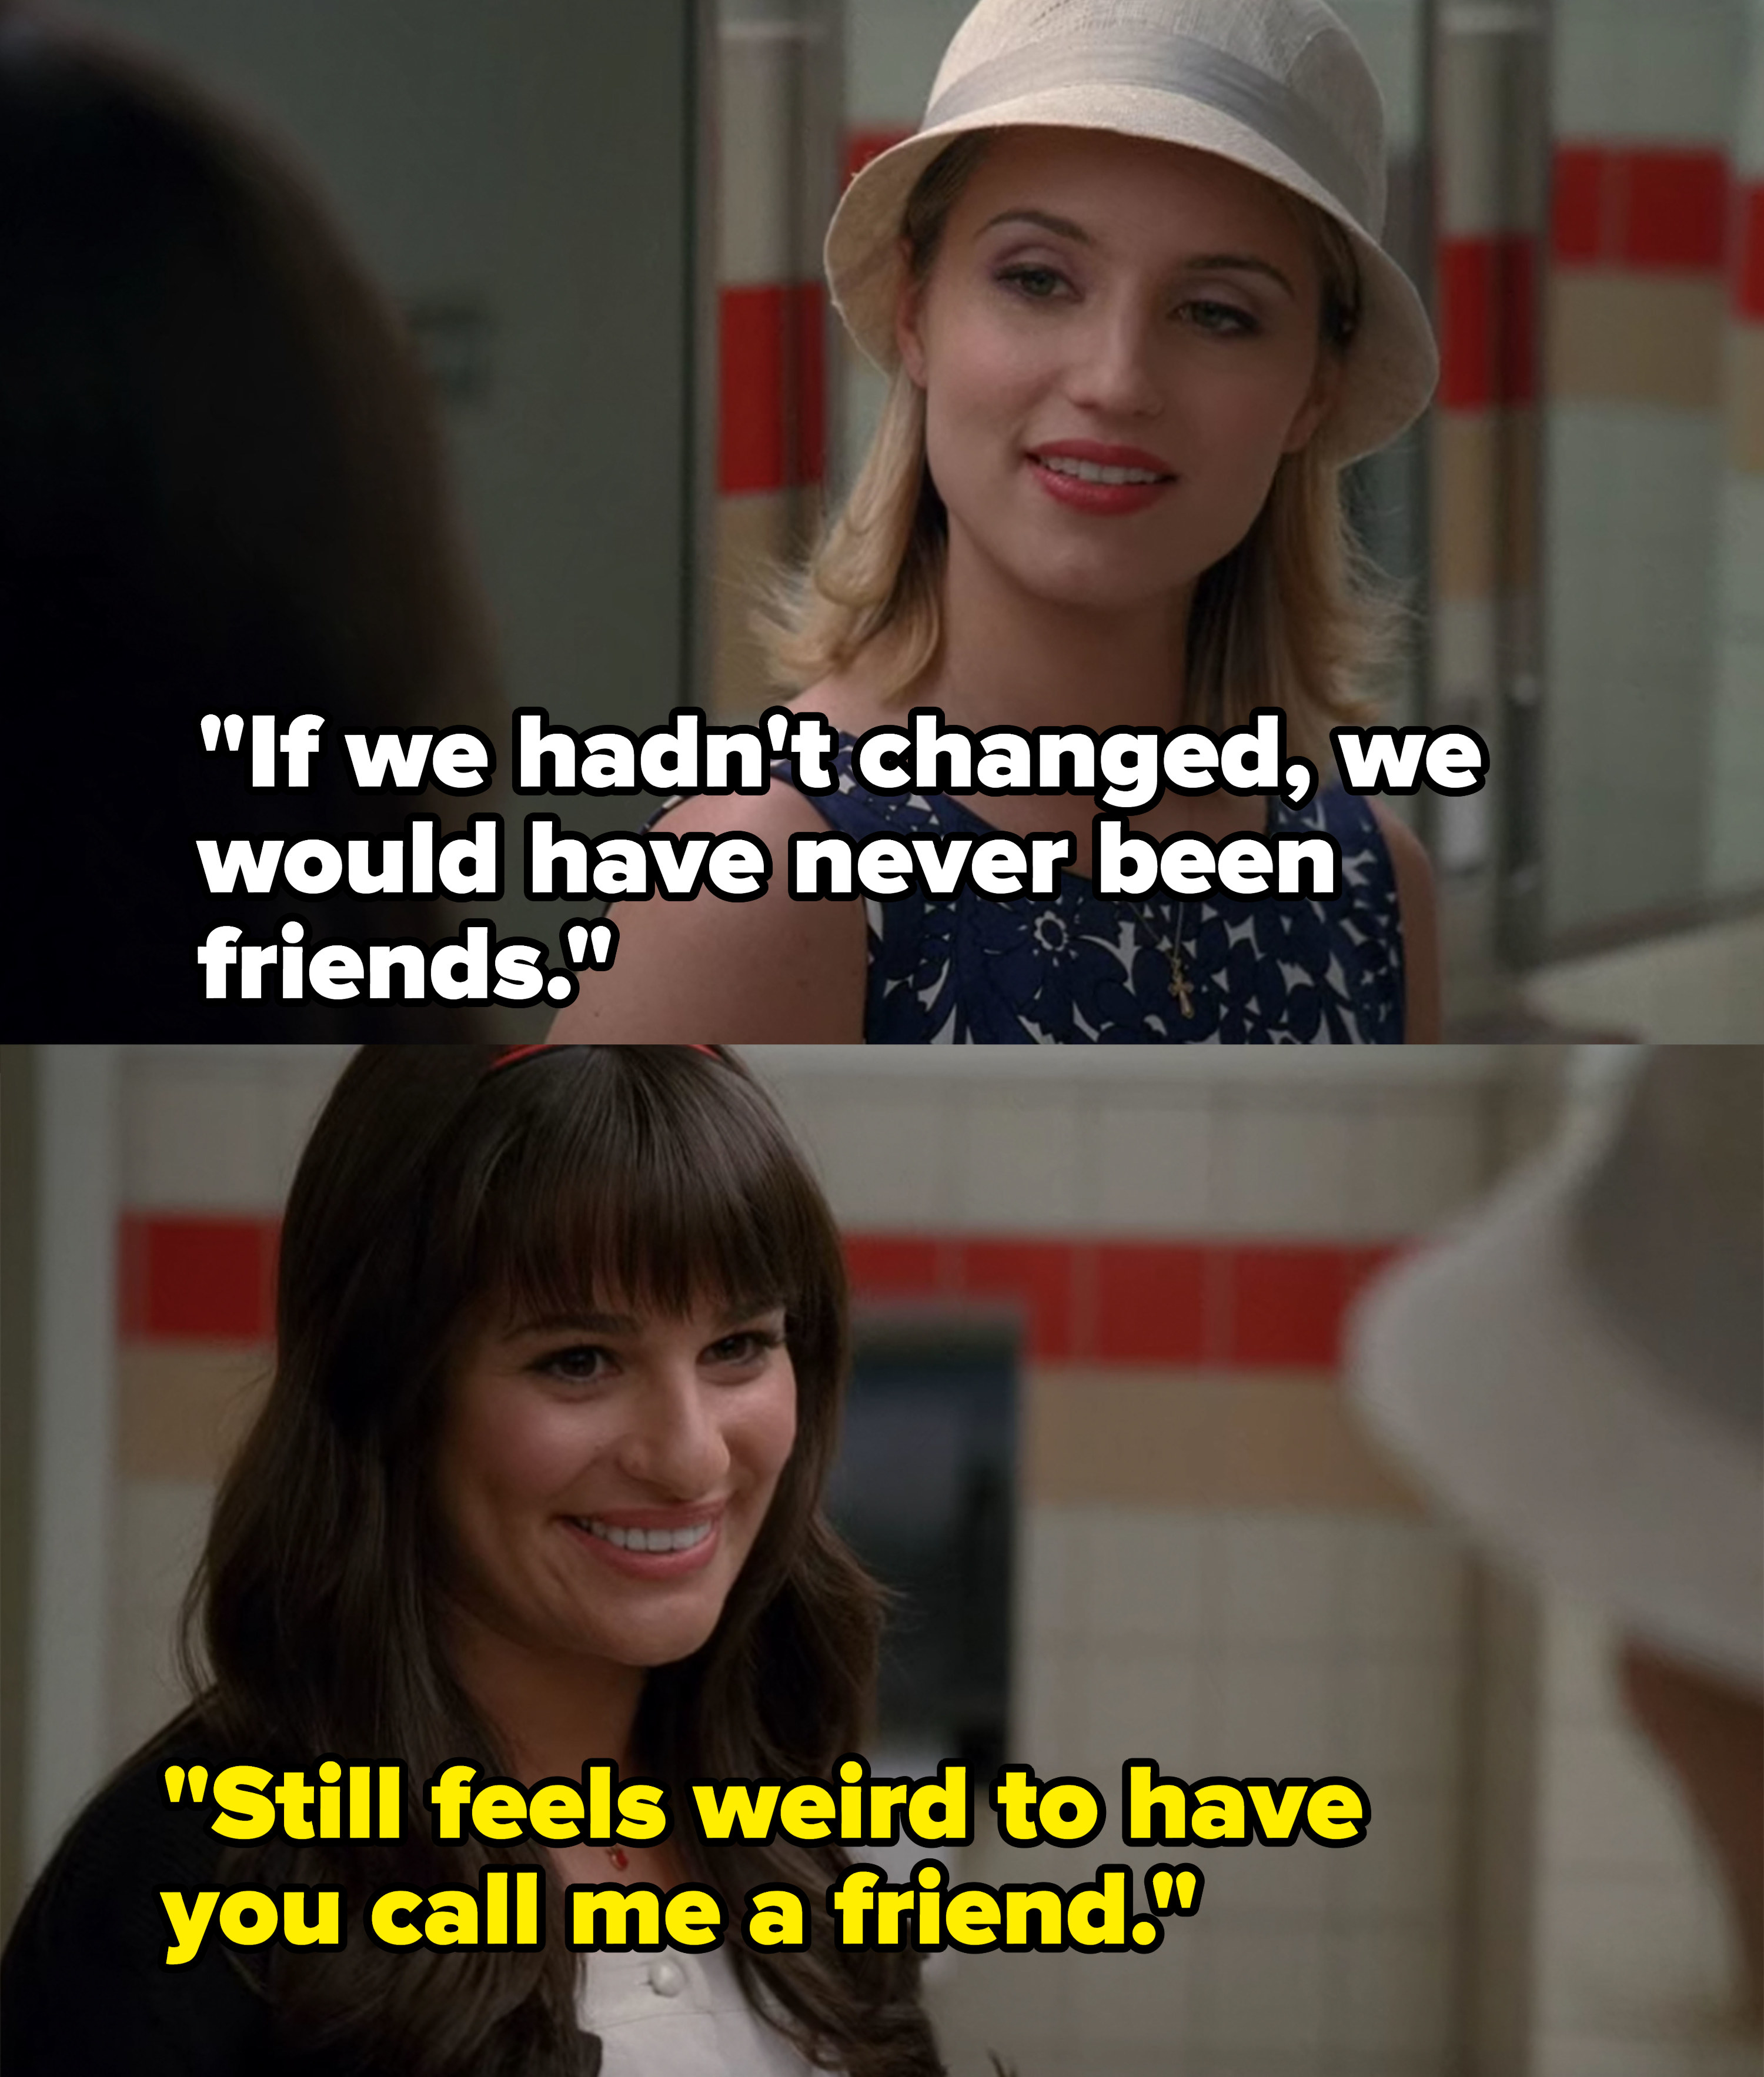 Quinn says they never would have been friends if they hadn't changed, Rachel says it still feels weird to have Quinn call her a friend